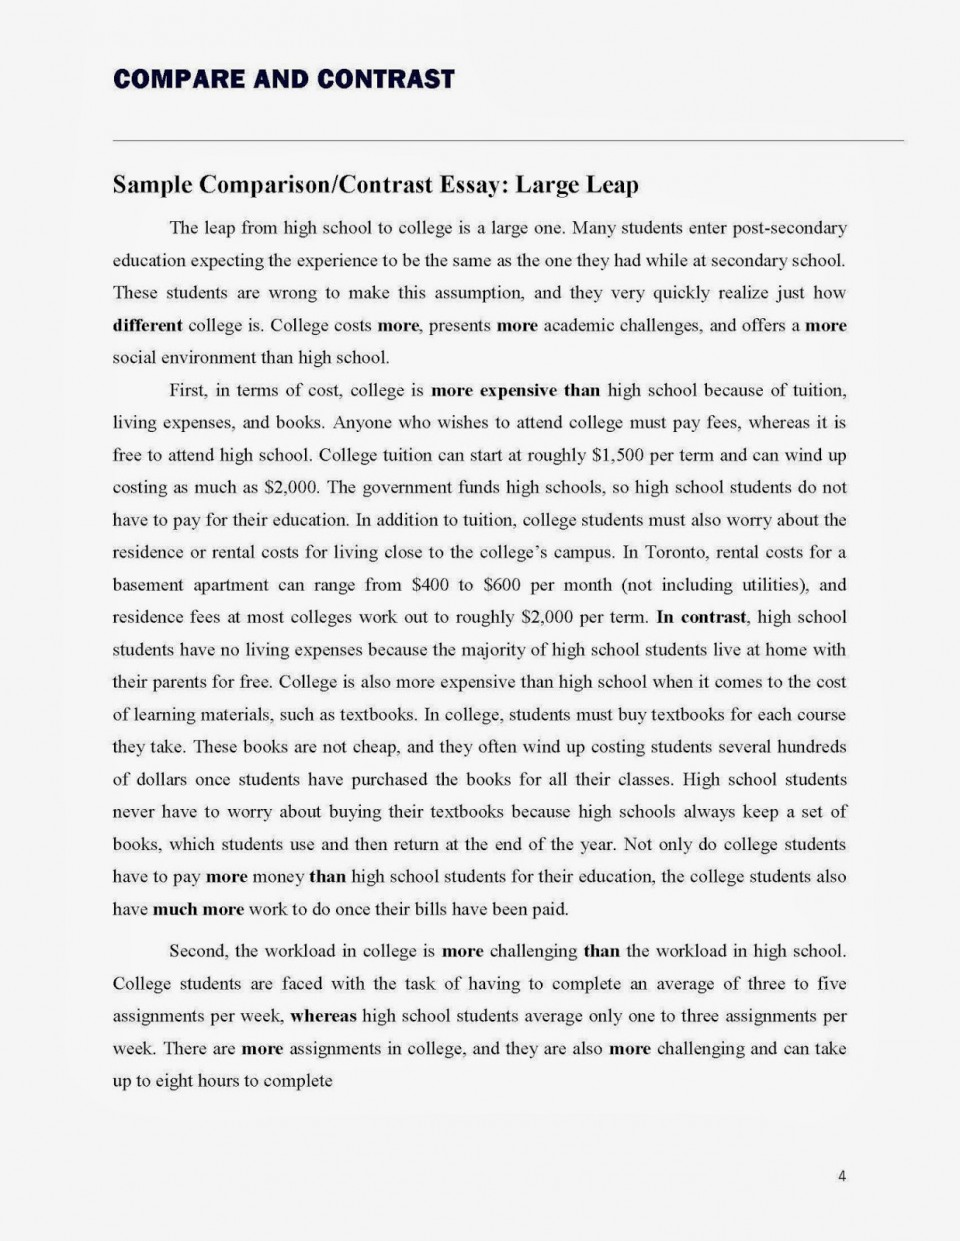 011 Compare And Contrast Essay Compareandcontrastessay Page 4h125 Frightening Outline Block Method Ideas High School Template For Middle 960